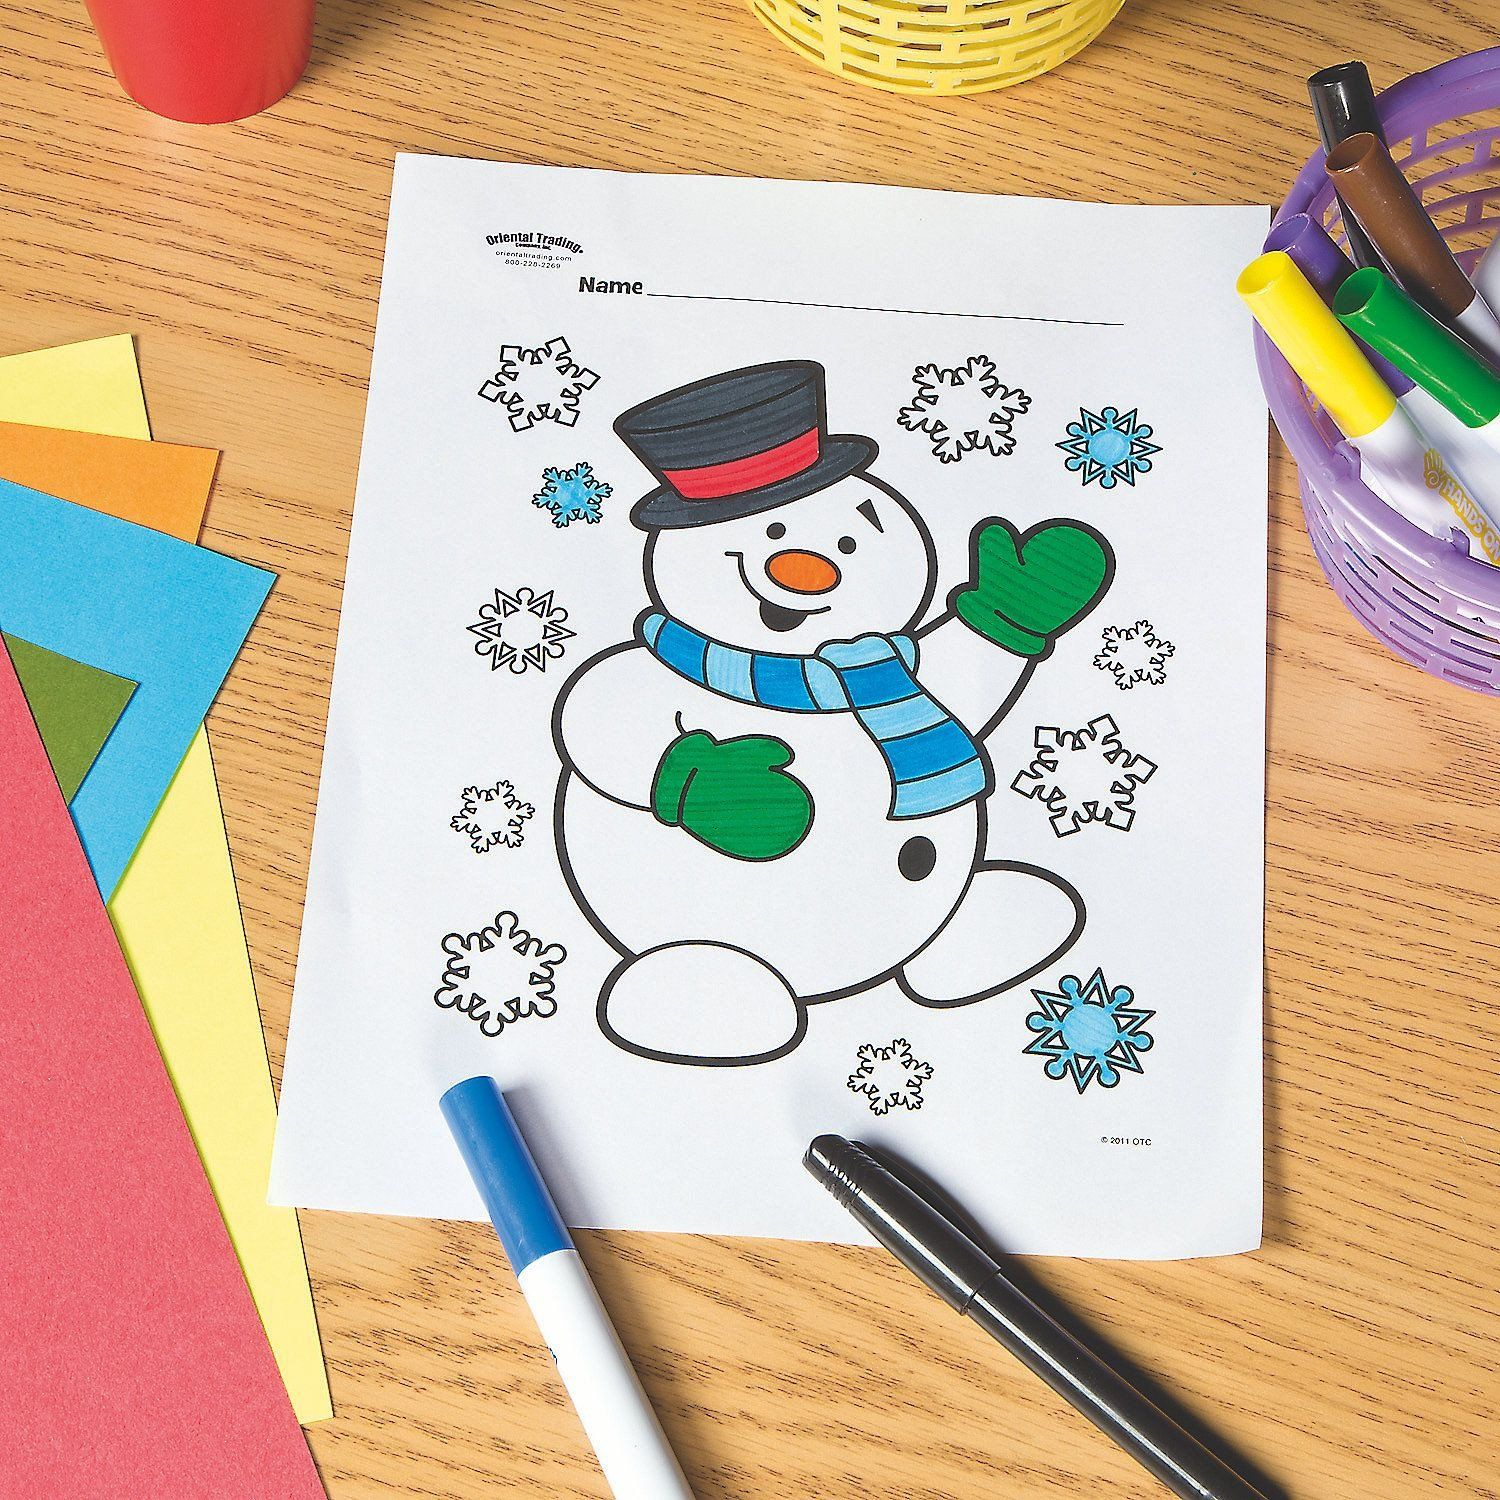 Oriental Trading Coloring Pages Luxury Snowman Free Printable Coloring Page Orie Snowman Party Printable Christmas Coloring Pages Free Christmas Coloring Pages